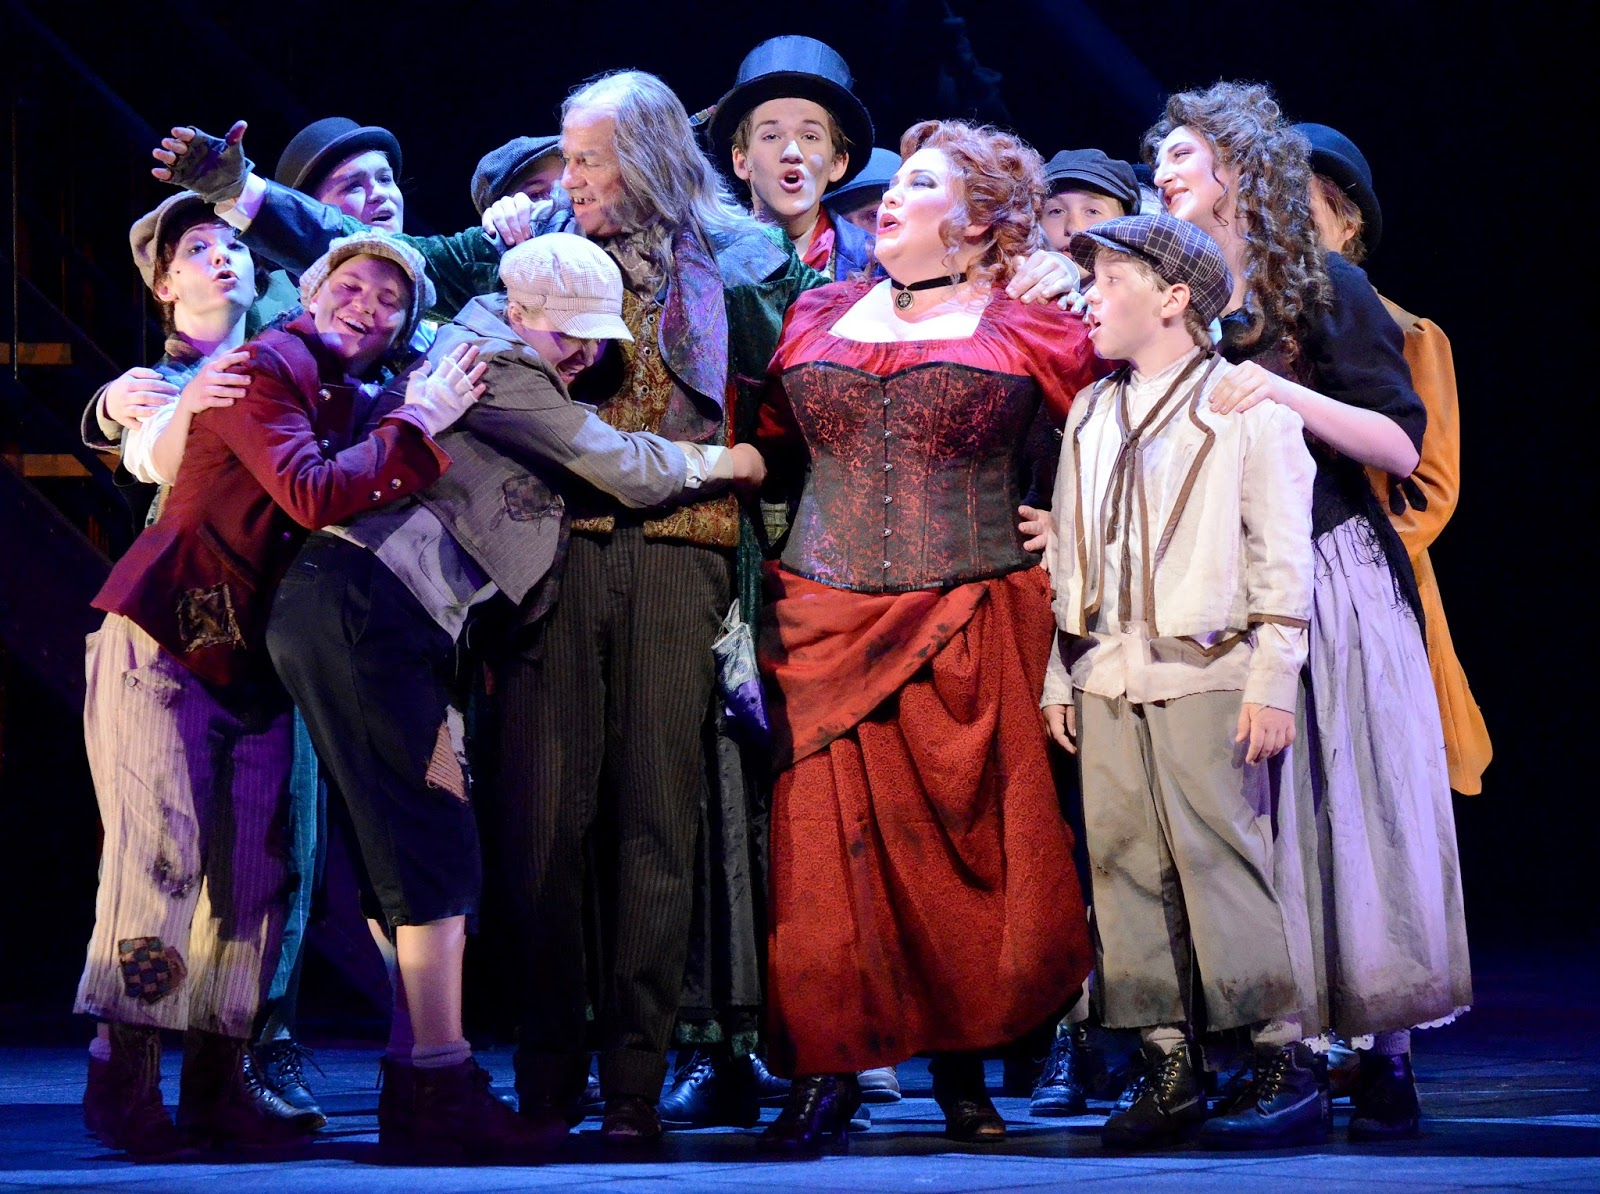 oliver twist review Buy oliver twist tickets showing at the regent's park open air theatre, london choose your own seats with the best availability at londontheatrecouk.